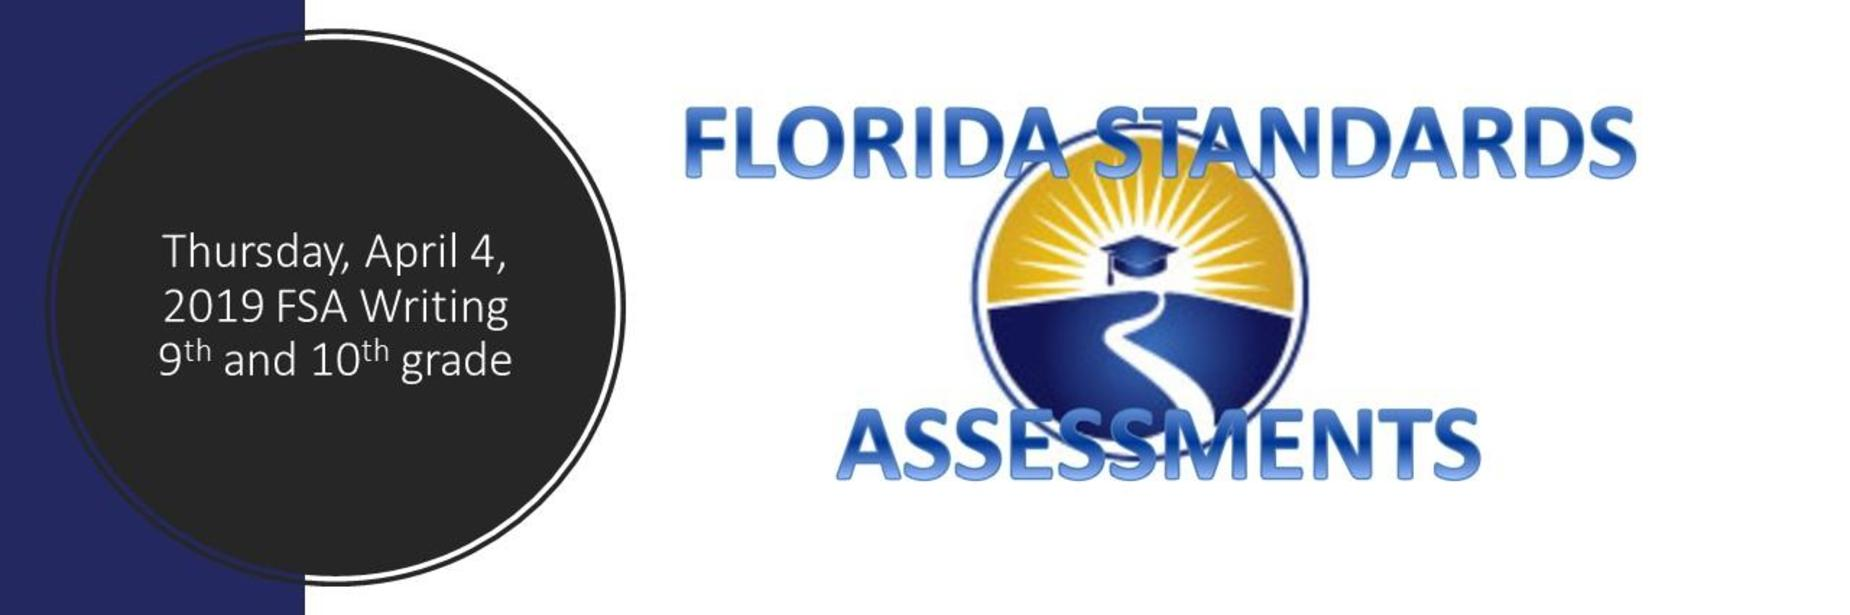 Thursday, April 4, 2019 FSA Writing 9th and 10th grade appears inside a black circle; The words Florida Standards Assessments appear over a circular image that has a road leading into a sunset